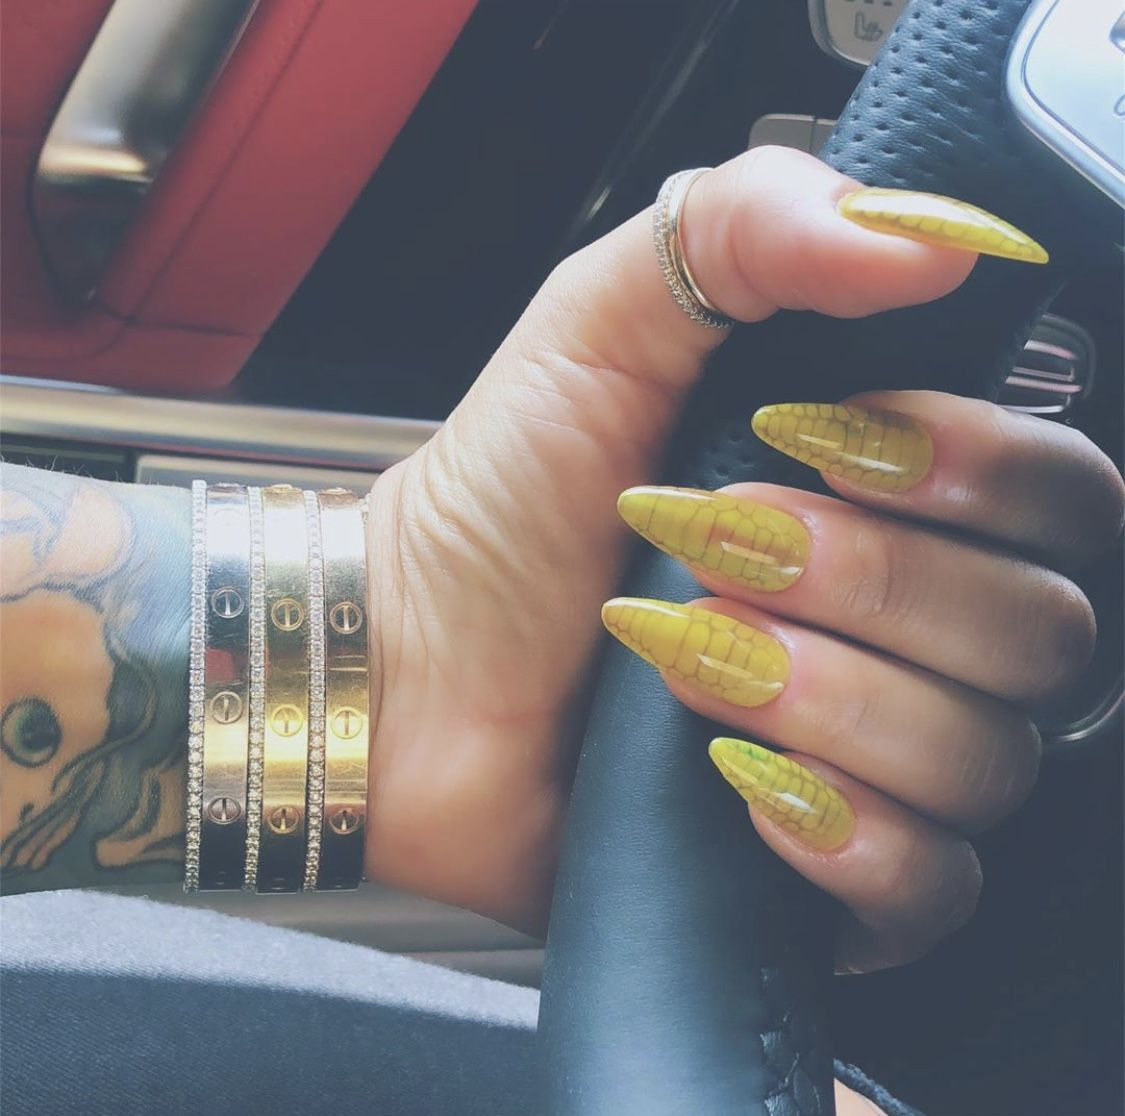 Pin by Kayla Darden on Girly Tingz | How to do nails, Nail ...